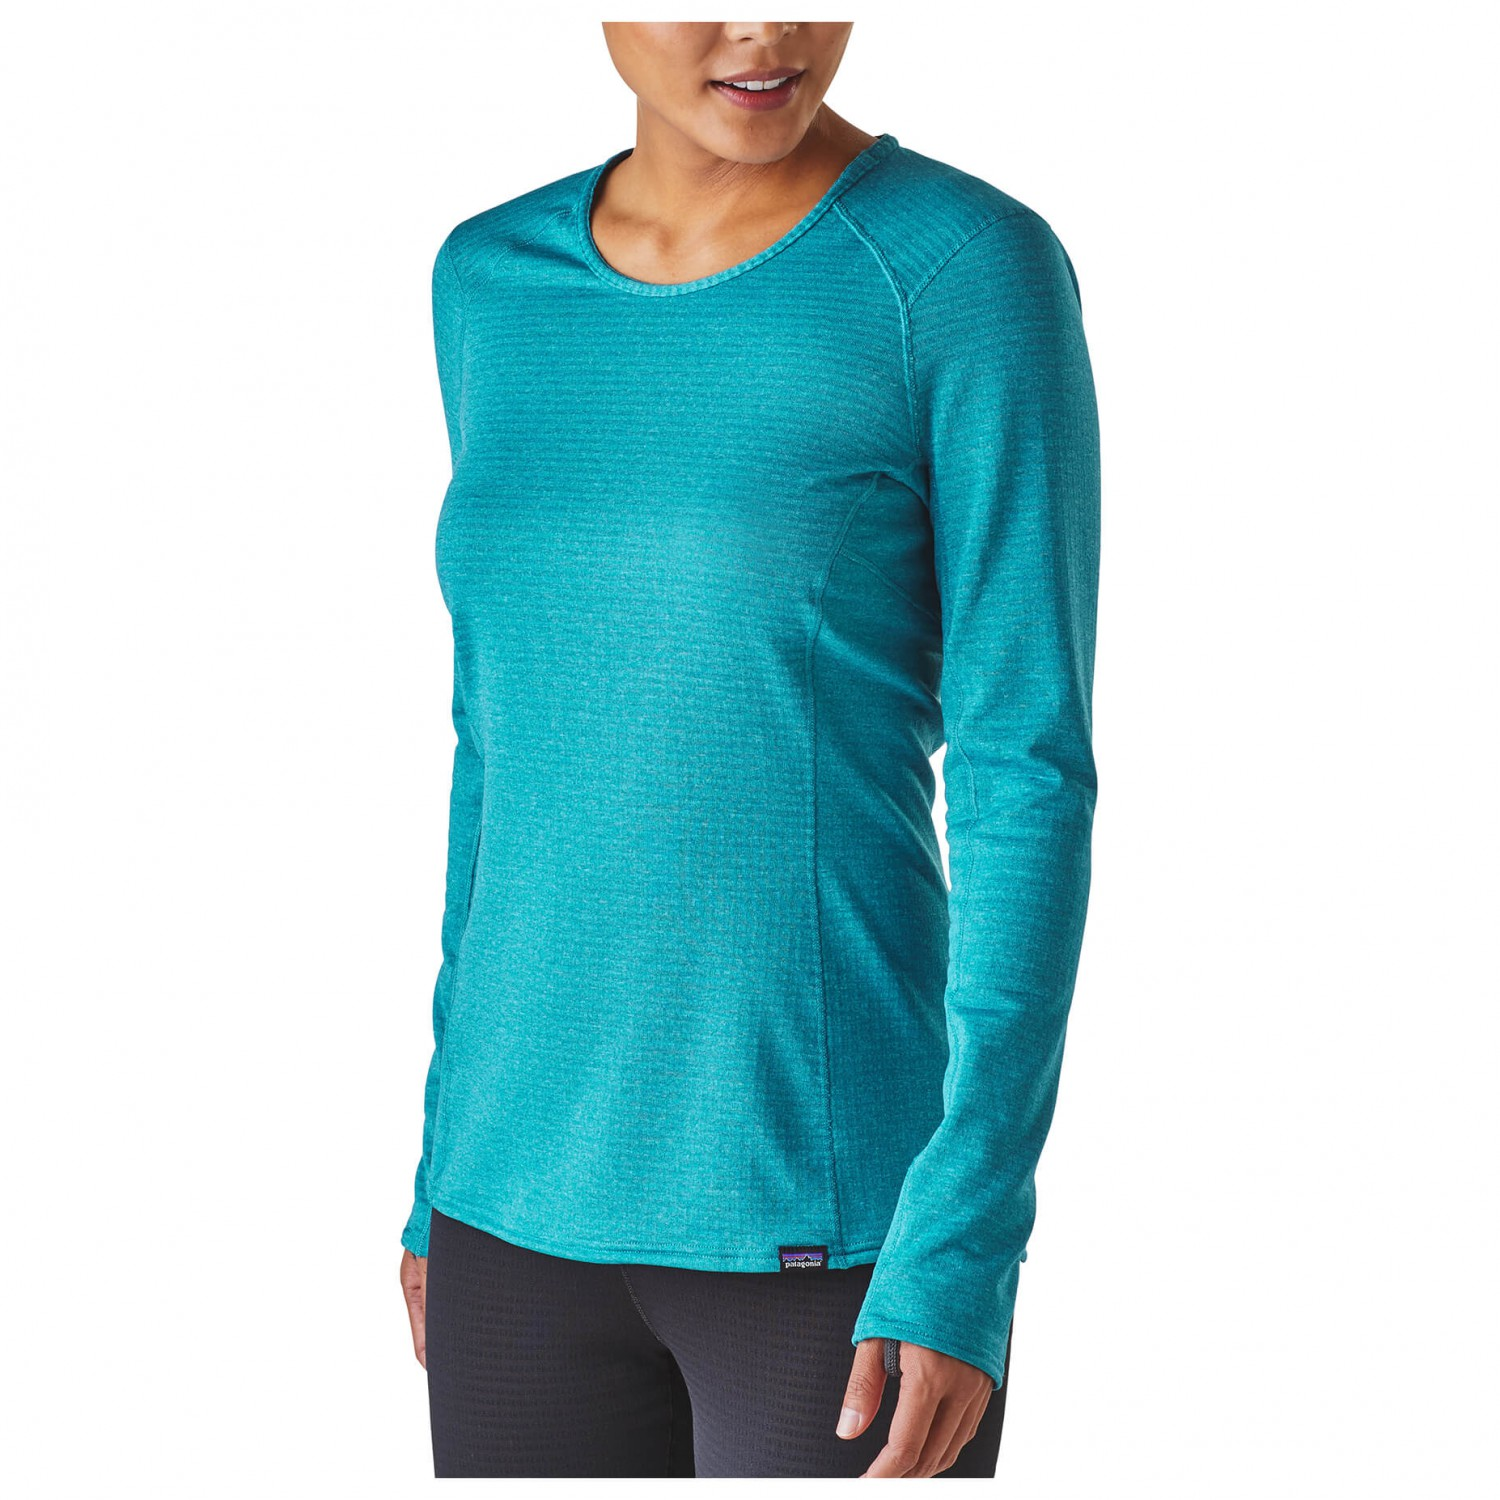 Patagonia - Women s Capilene Thermal Weight Crew  Patagonia - Women s  Capilene Thermal Weight ... db7a2bb355d3